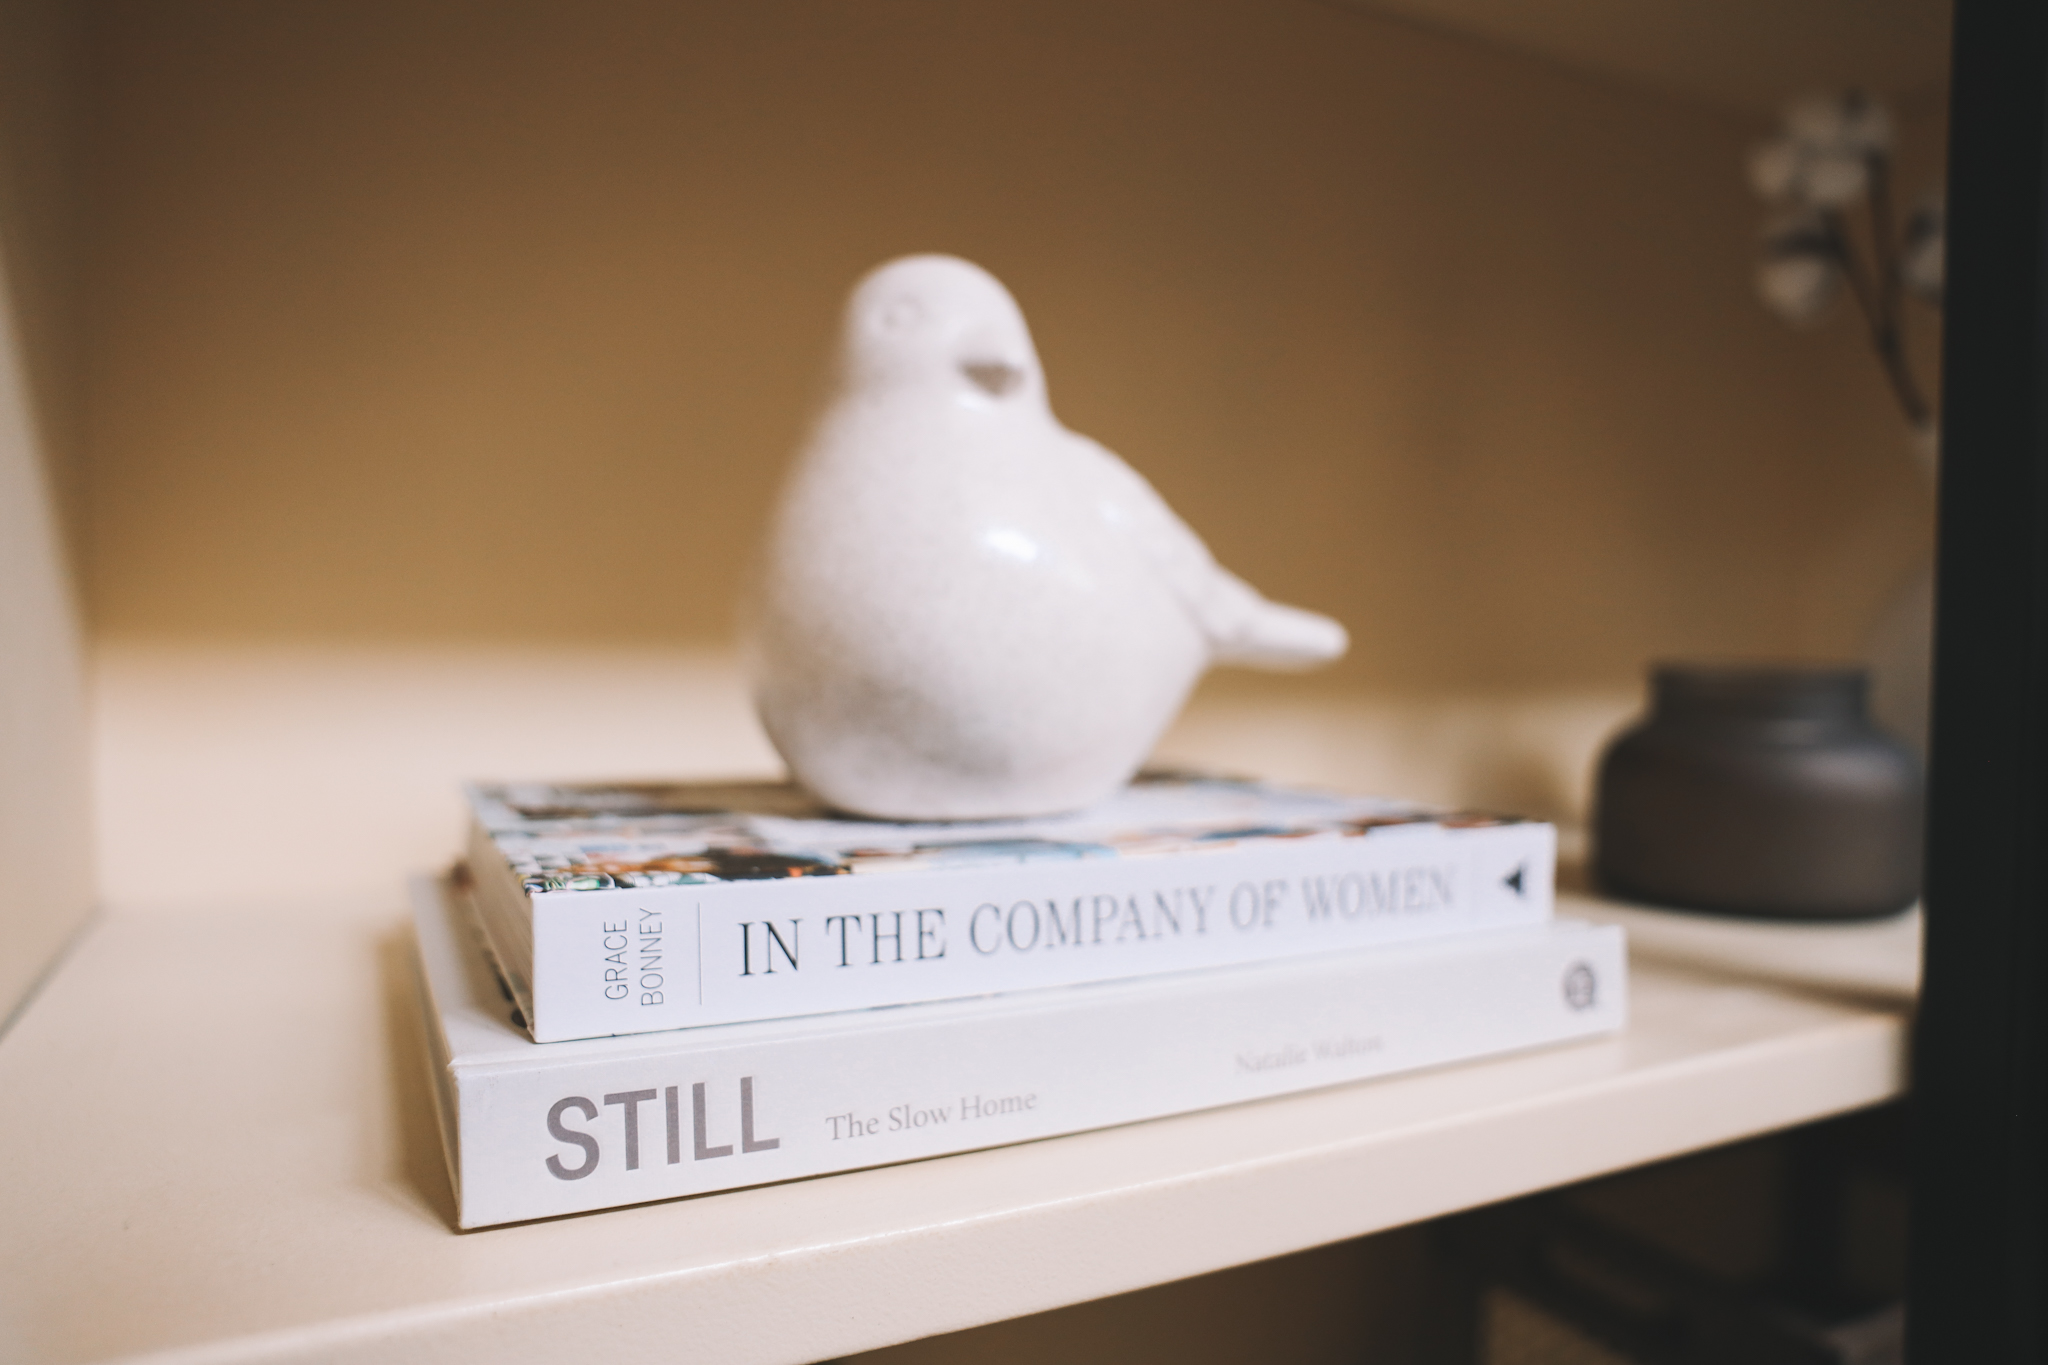 Books for Console Table